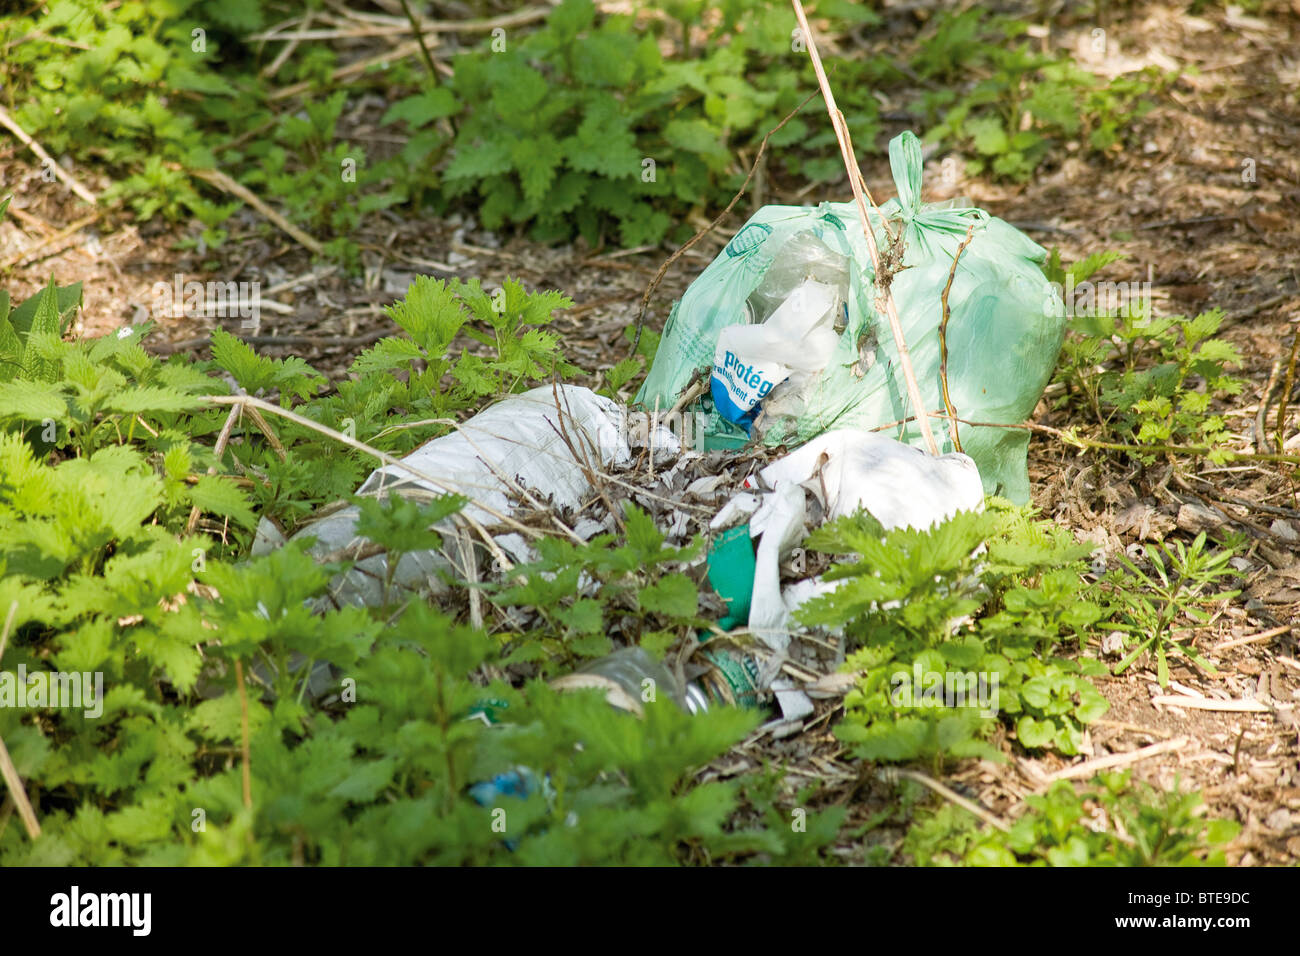 Garbage dumped outdoors - Stock Image